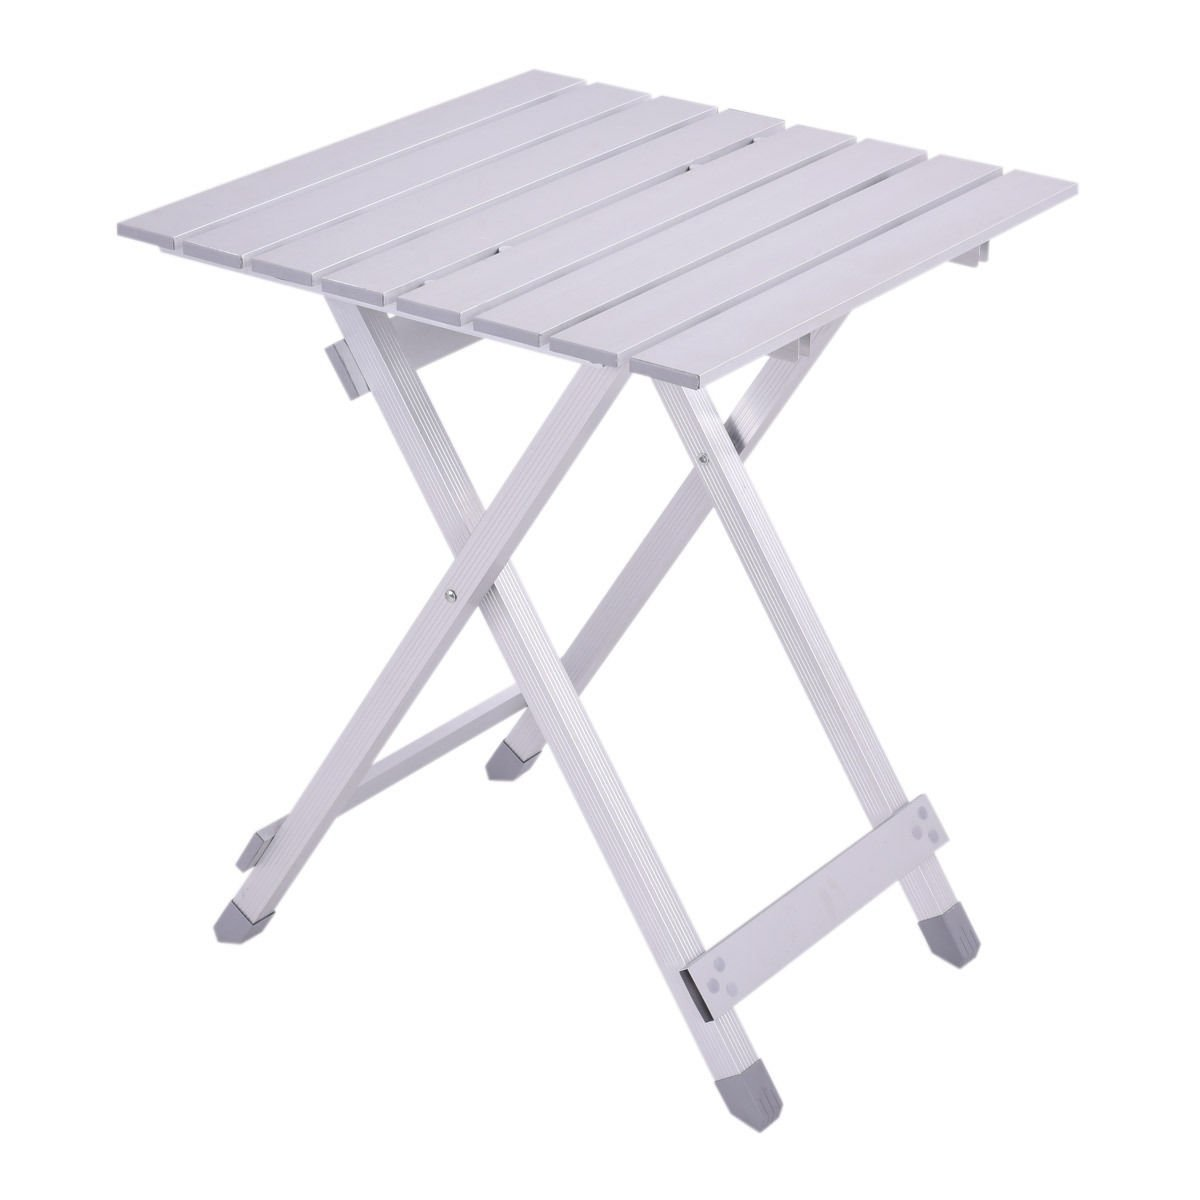 Roll up Aluminum Alloy Foldable Portable Table Picnic Outdoor Camping Ultralight